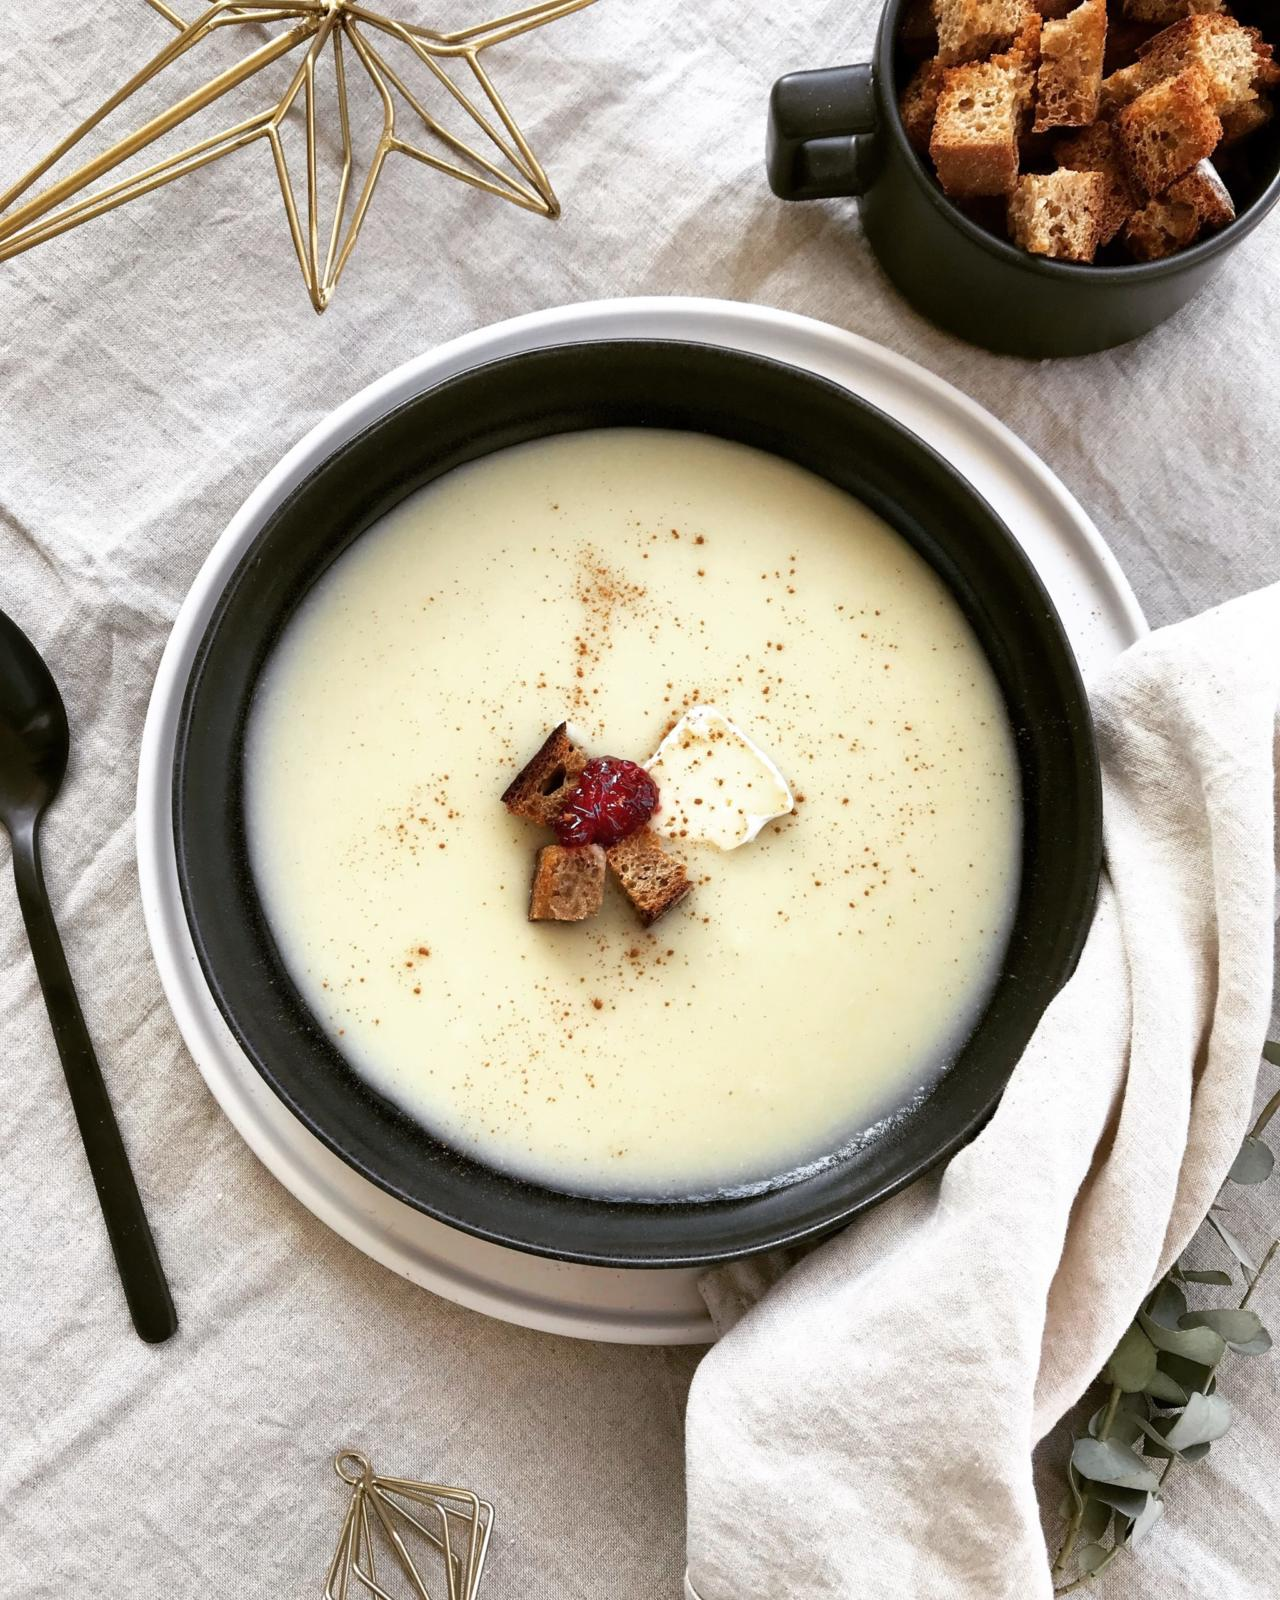 Sellerie Rahmsuppe mit Zimt Croutons